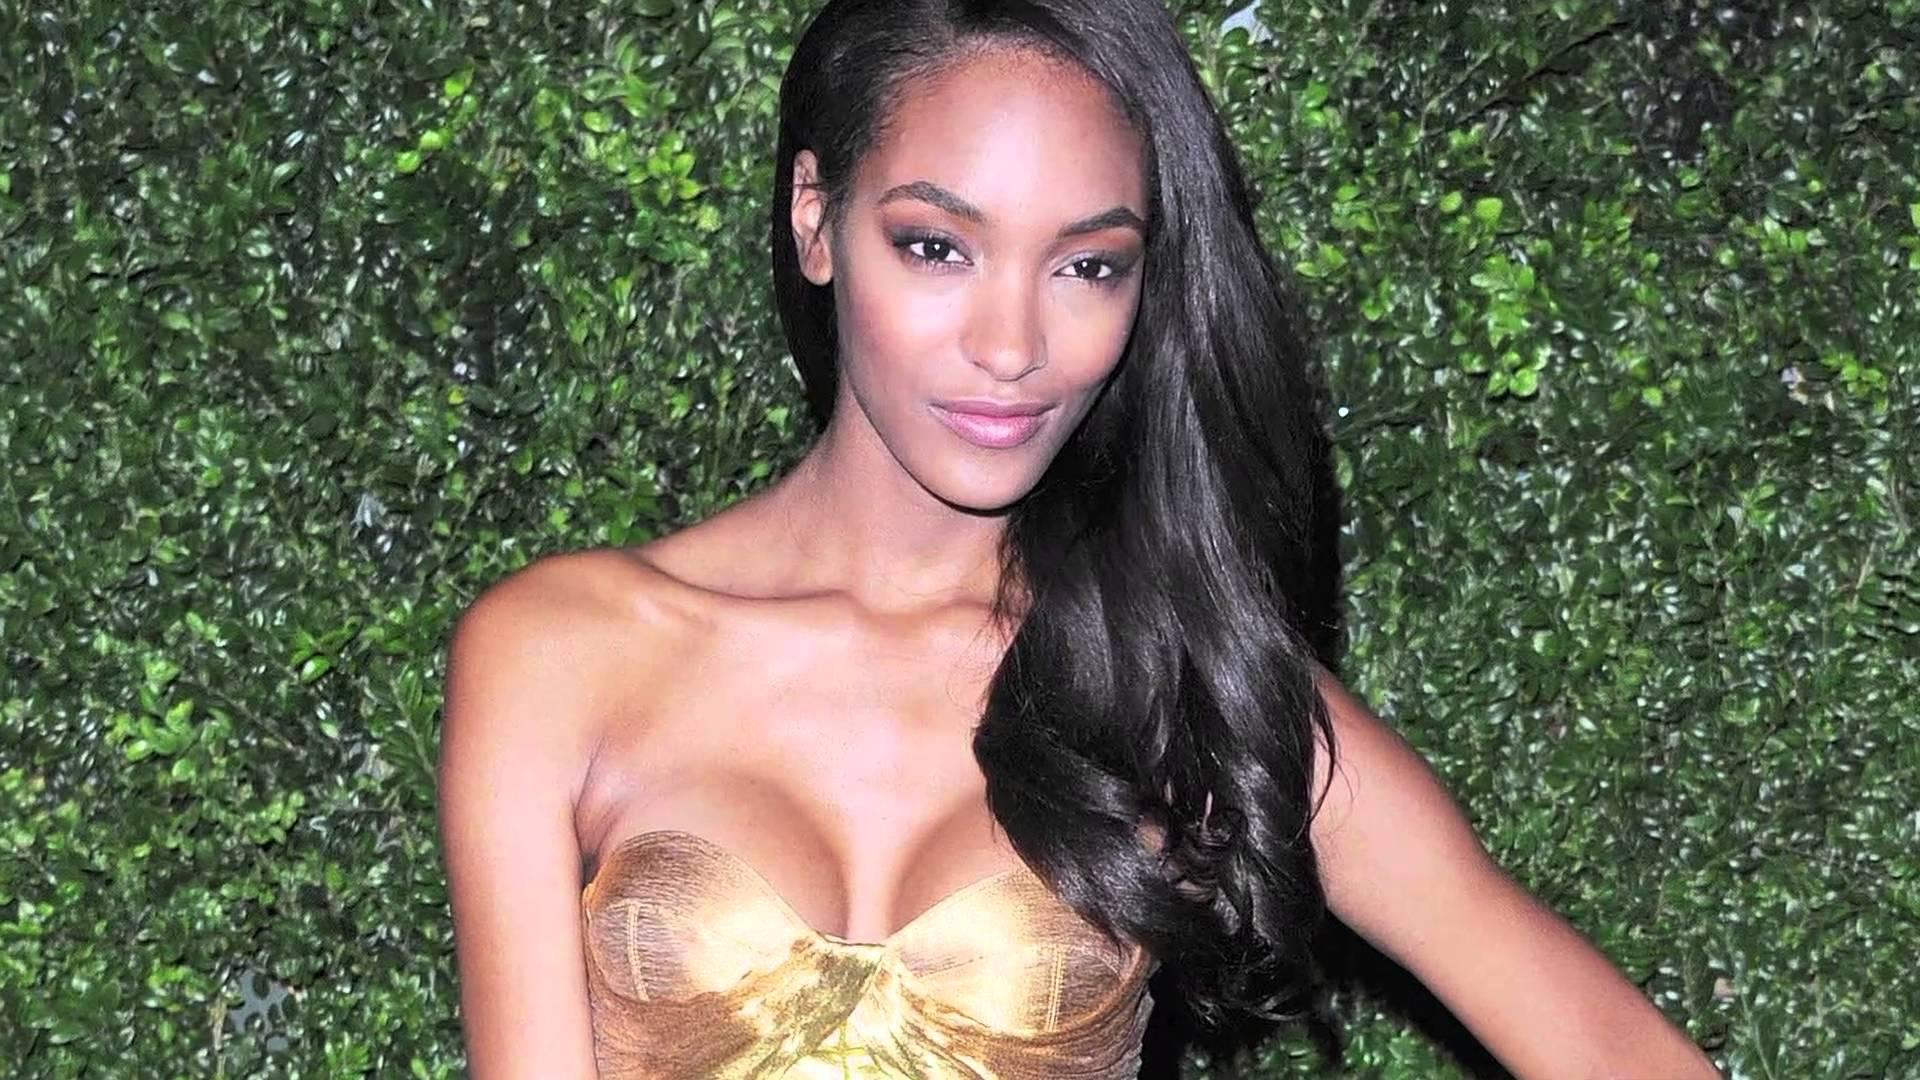 Jourdan Dunn London Fashion Week 2013 Sexiest Model